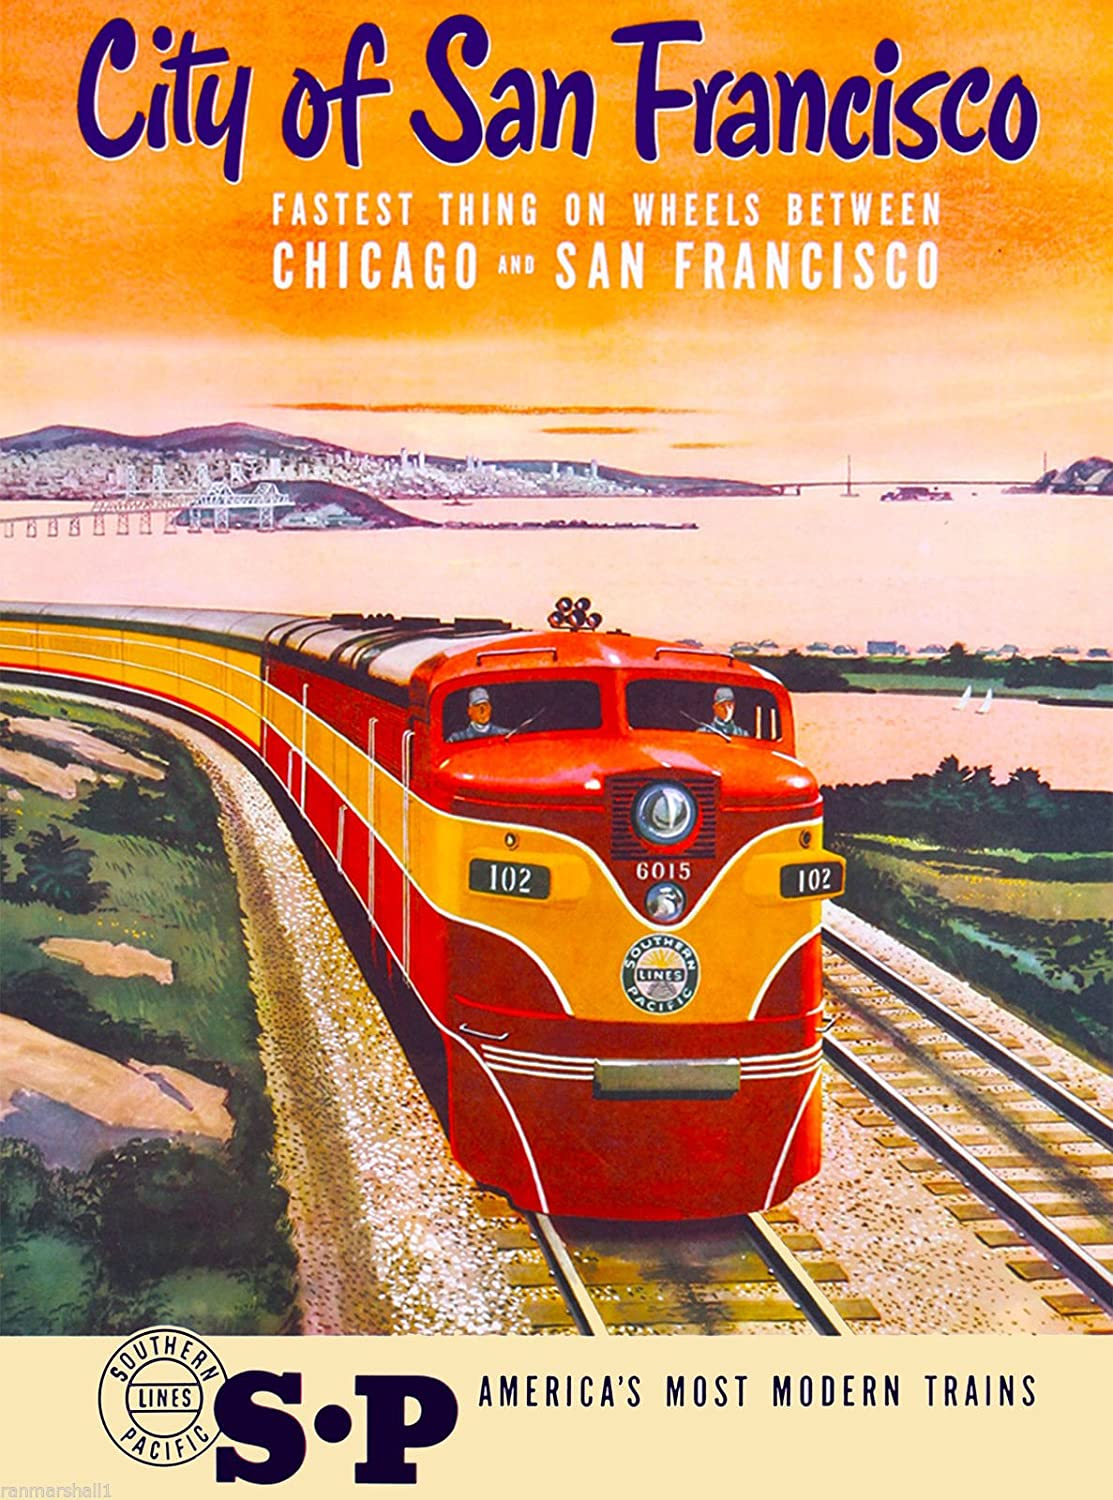 A SLICE IN TIME City of San Francisco California Southern Pacific Railroad Locomotive Train Vintage United States Travel Advertisement Poster